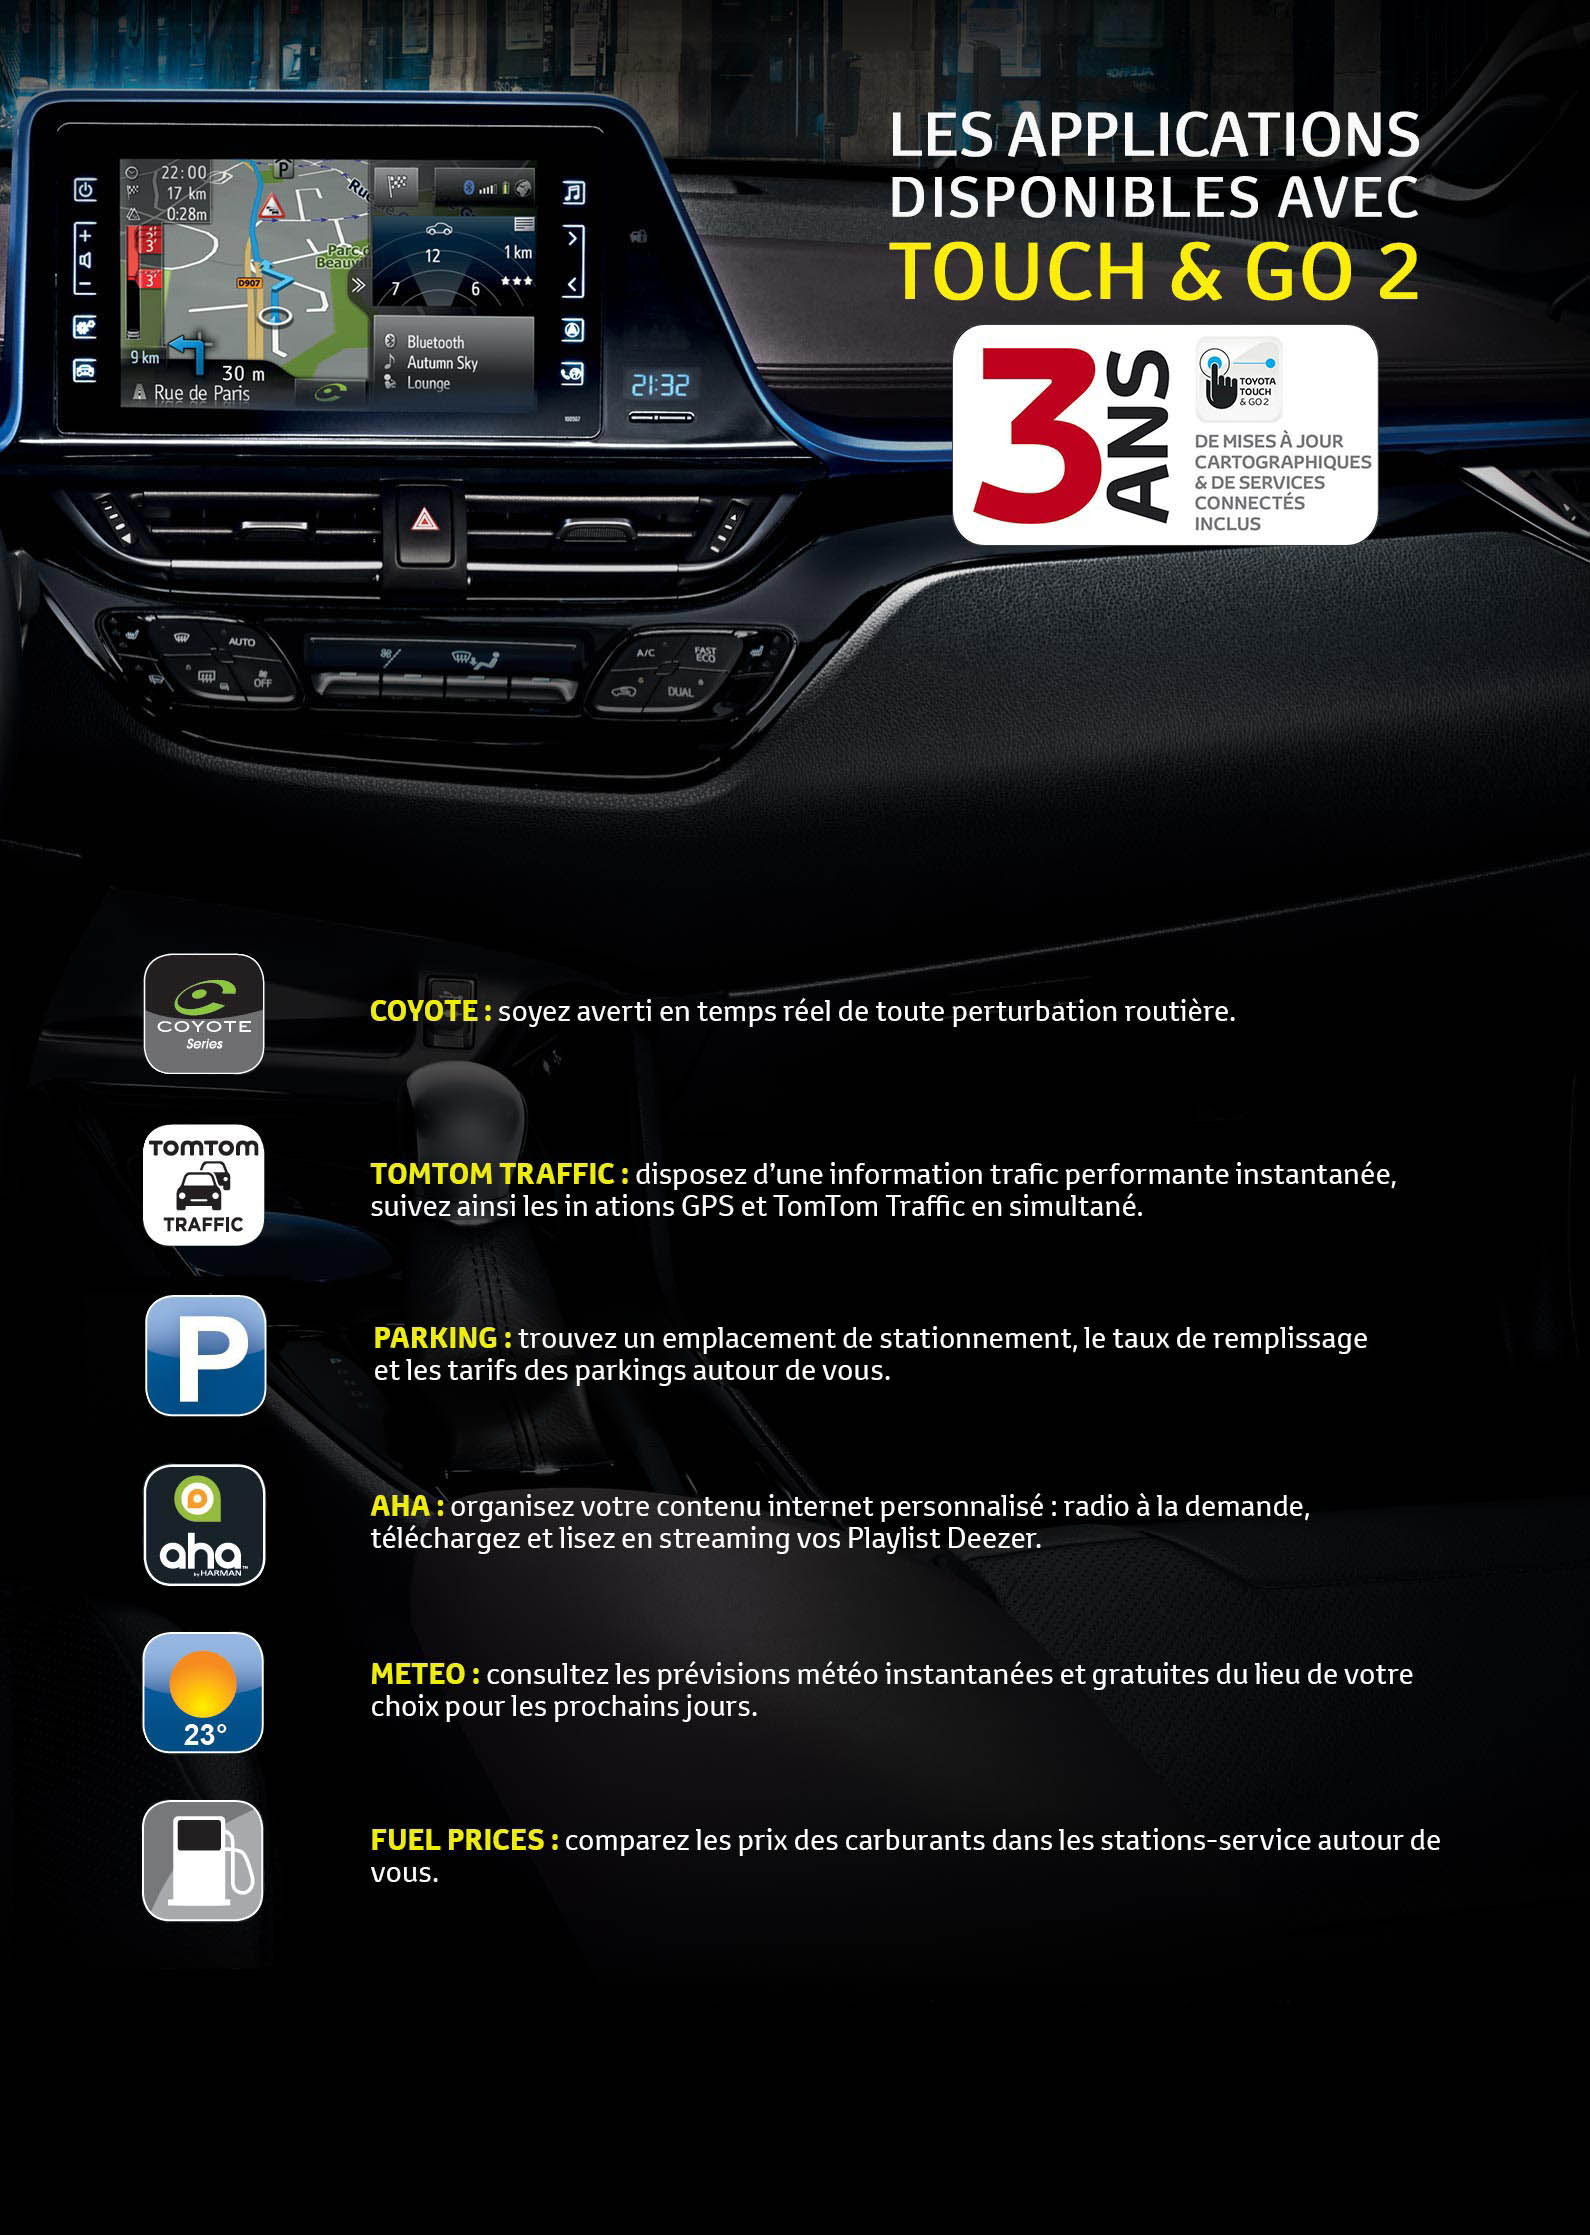 Applications Toyota Touch & Go 2